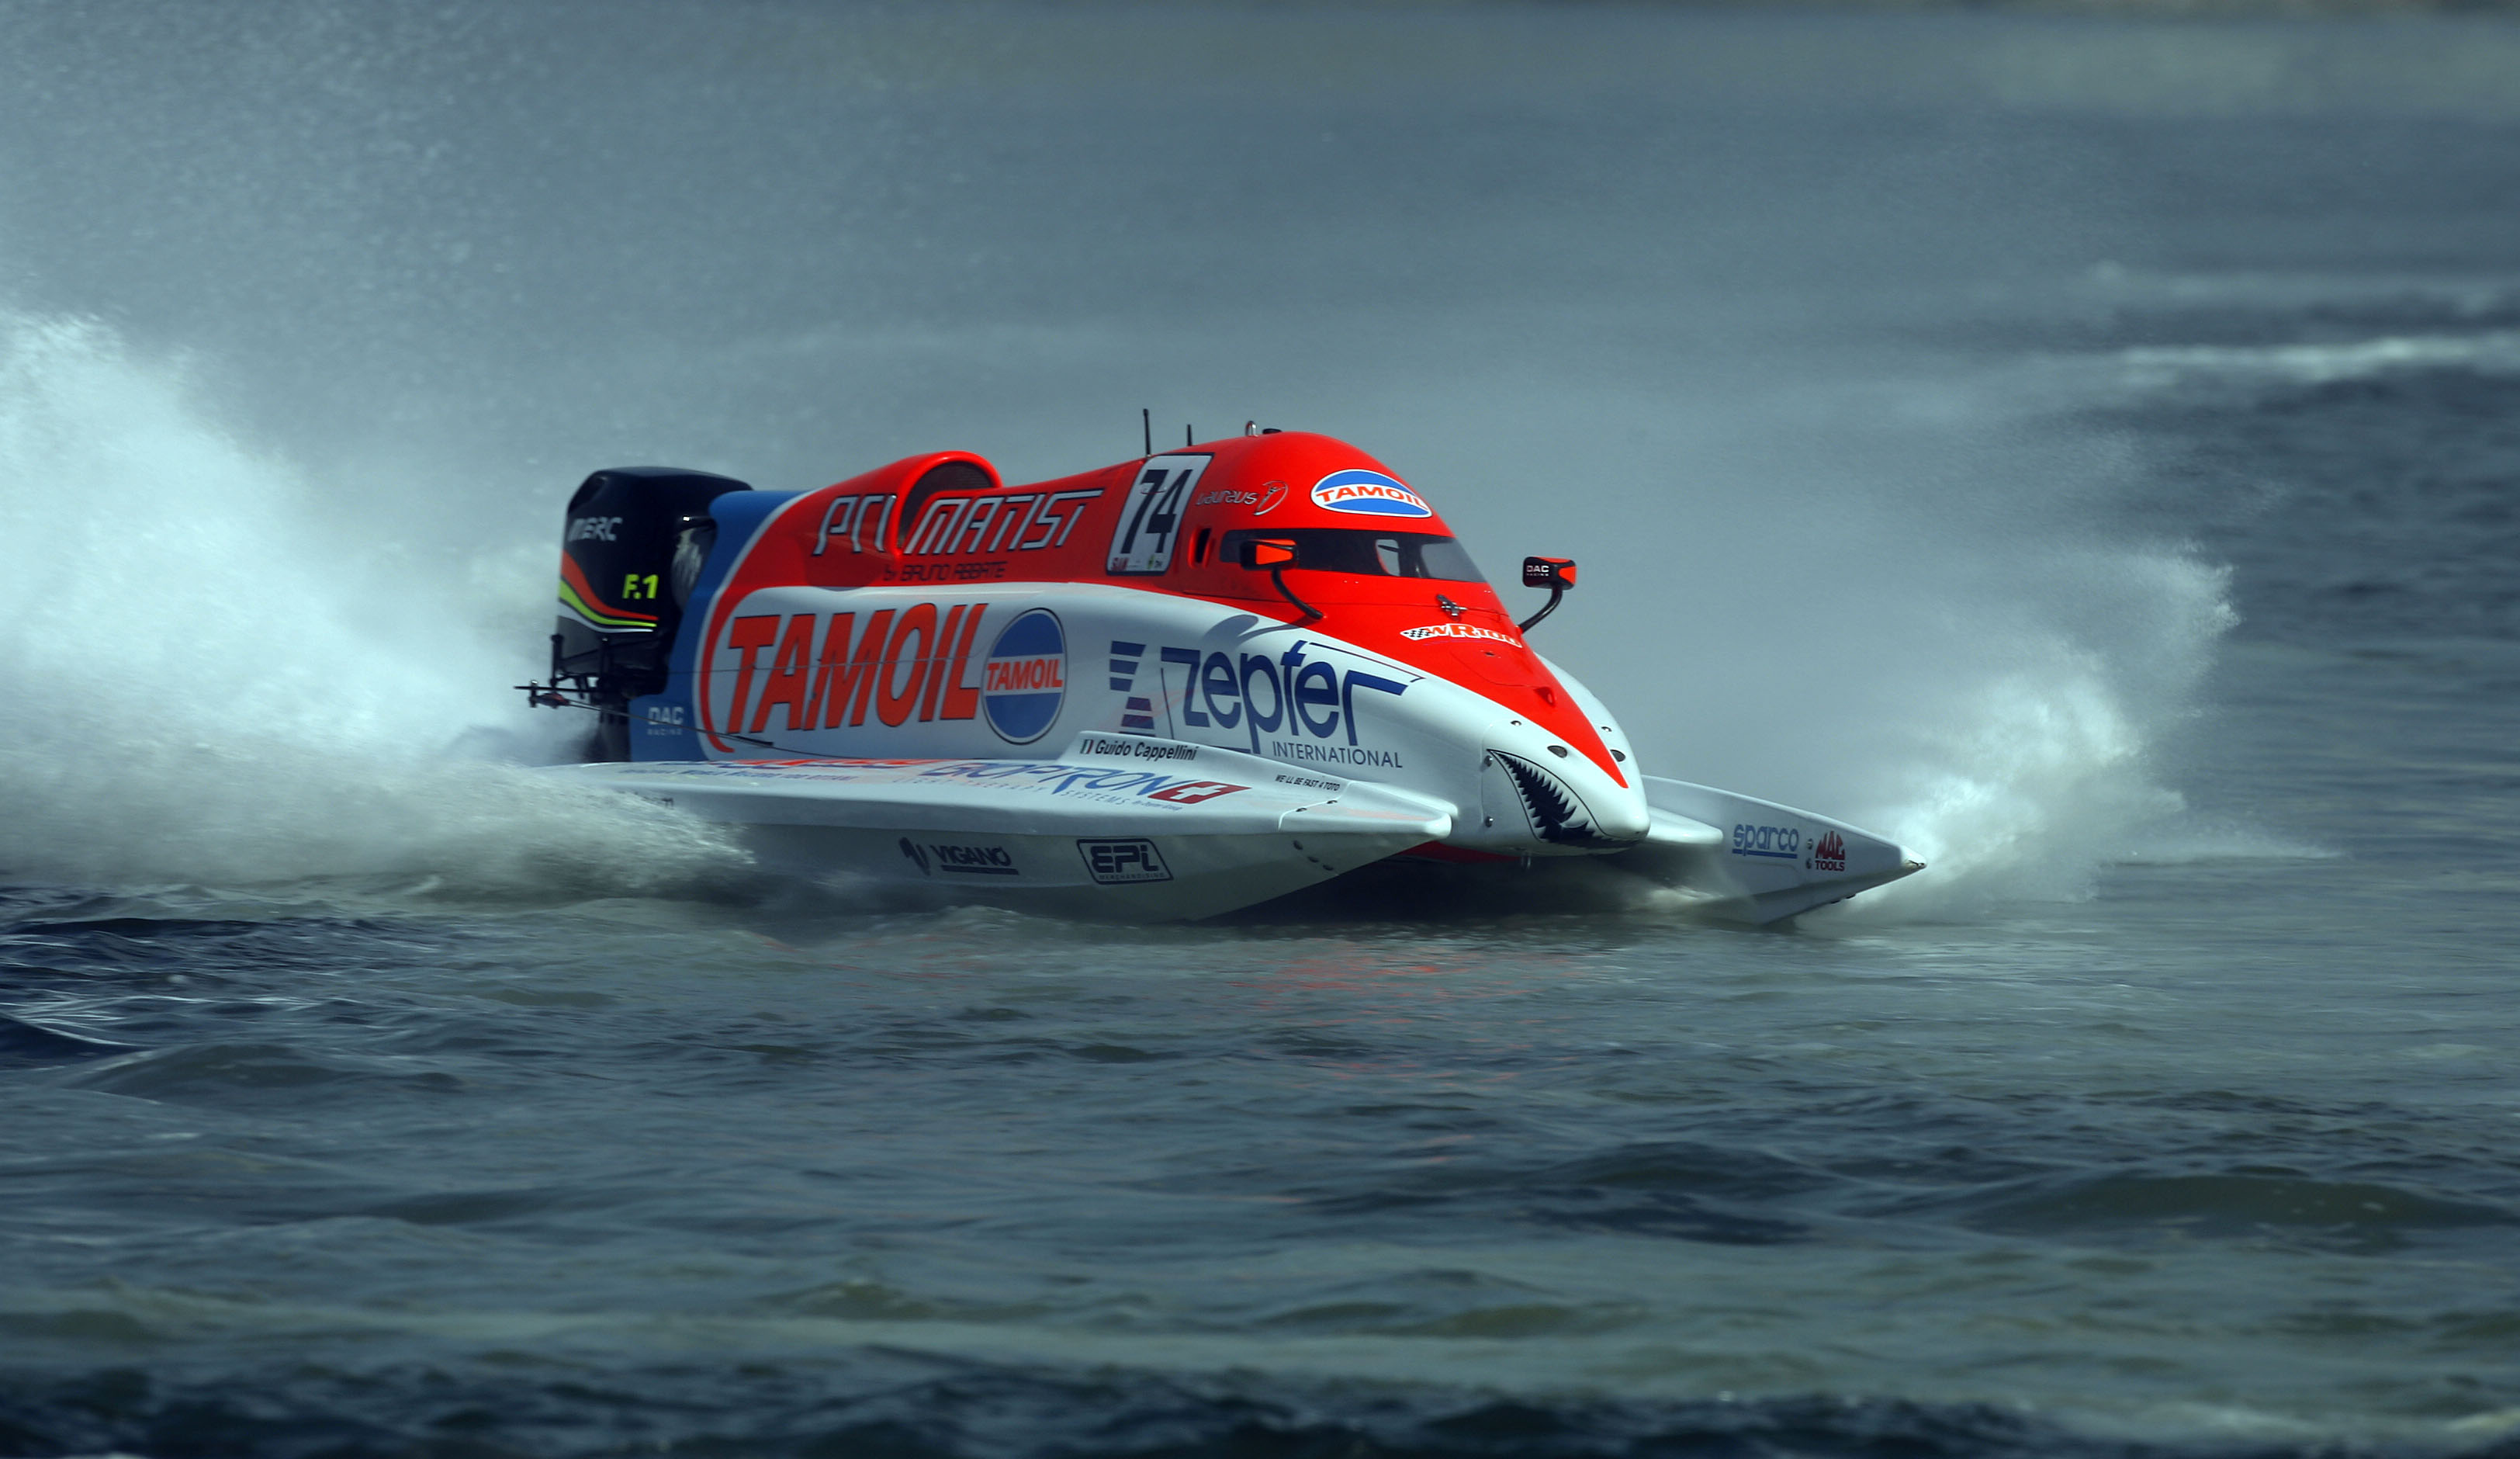 111208-GP OF SHARJAH-PL-Guido Cappellini of Italy of the Tamoil Racing team in action during the 1st time trials at the UIM F1 Powerboat Grand Prix of Sharjah,  Khalid Lagoon, UAE. Picture by Paul Lakatos/Idea Marketing.